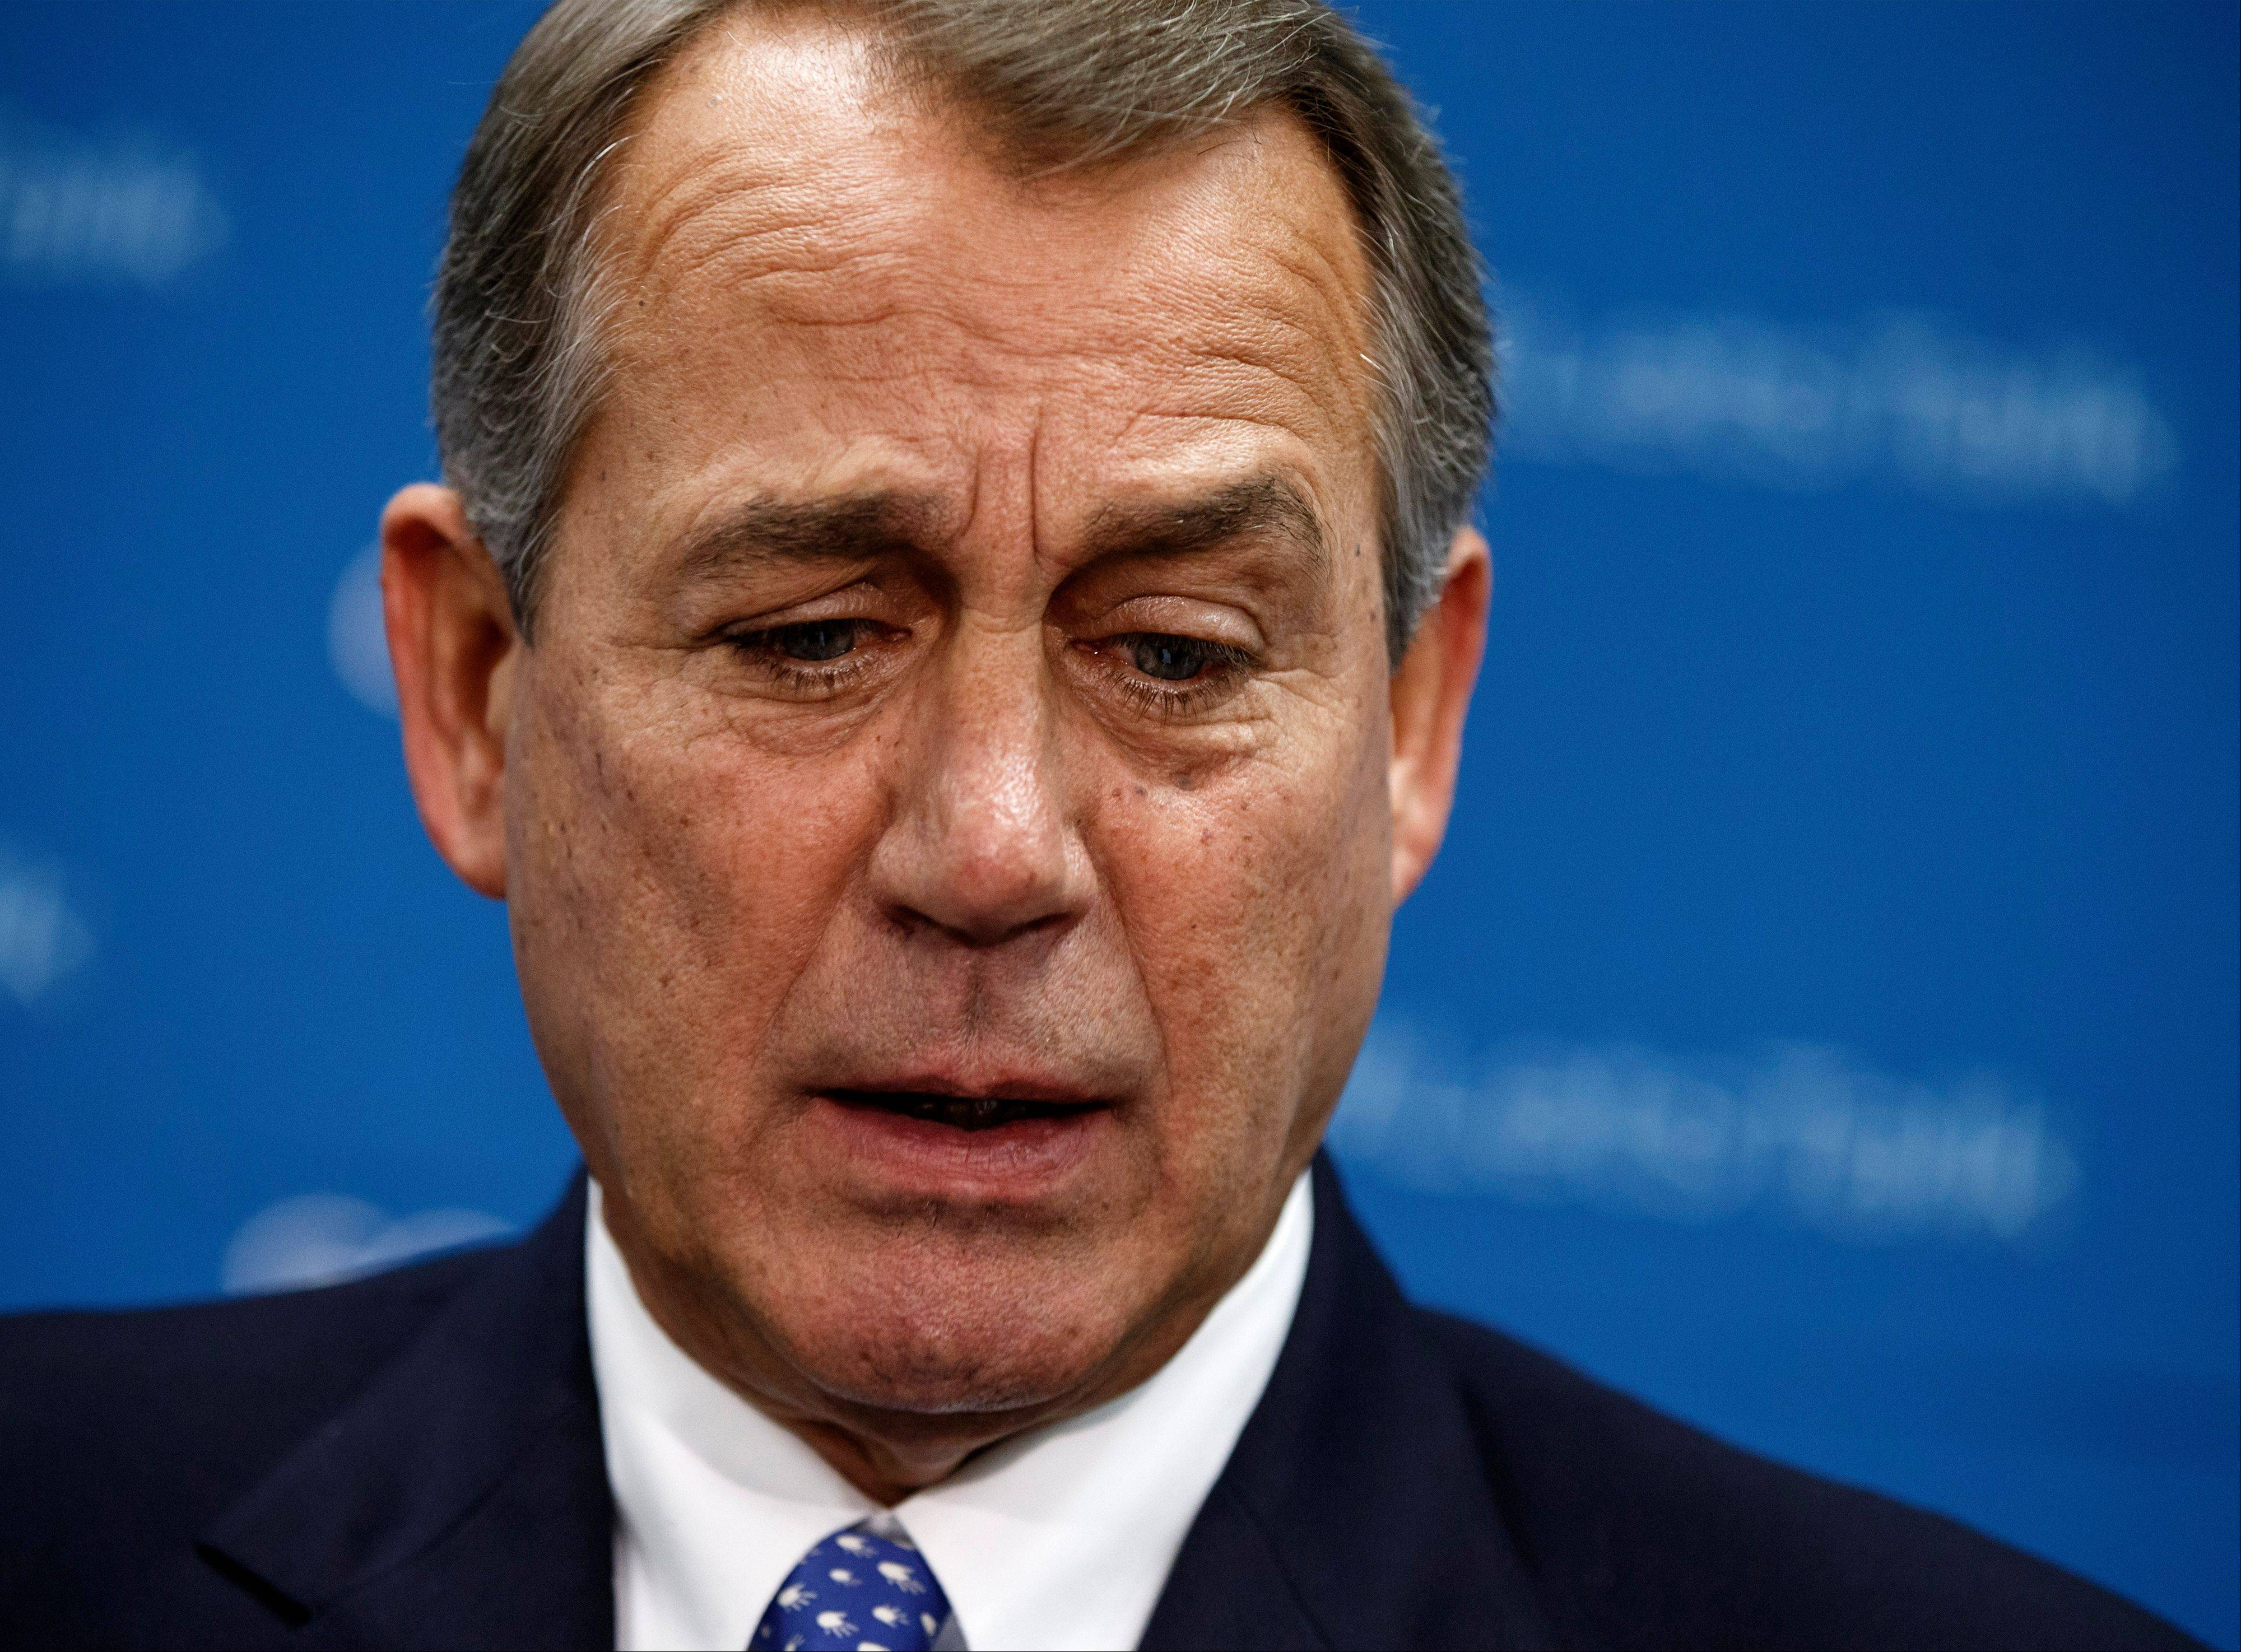 Obama, Boehner trade barbs, hints of compromise